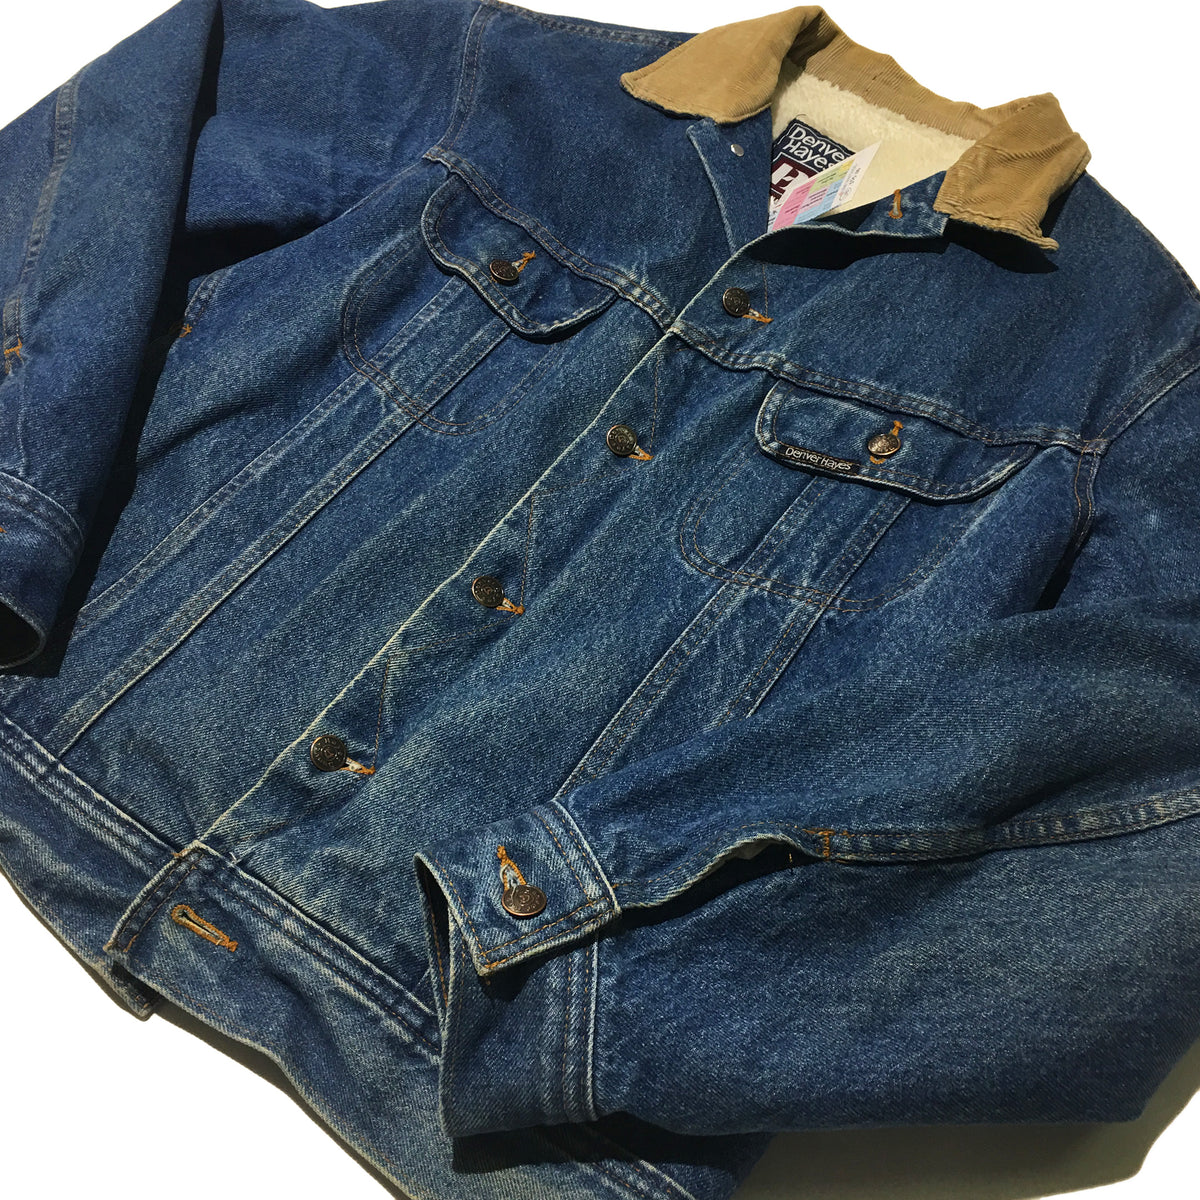 Denver Hayes: Denver Hayes Denim Jacket W/ Fur Inside